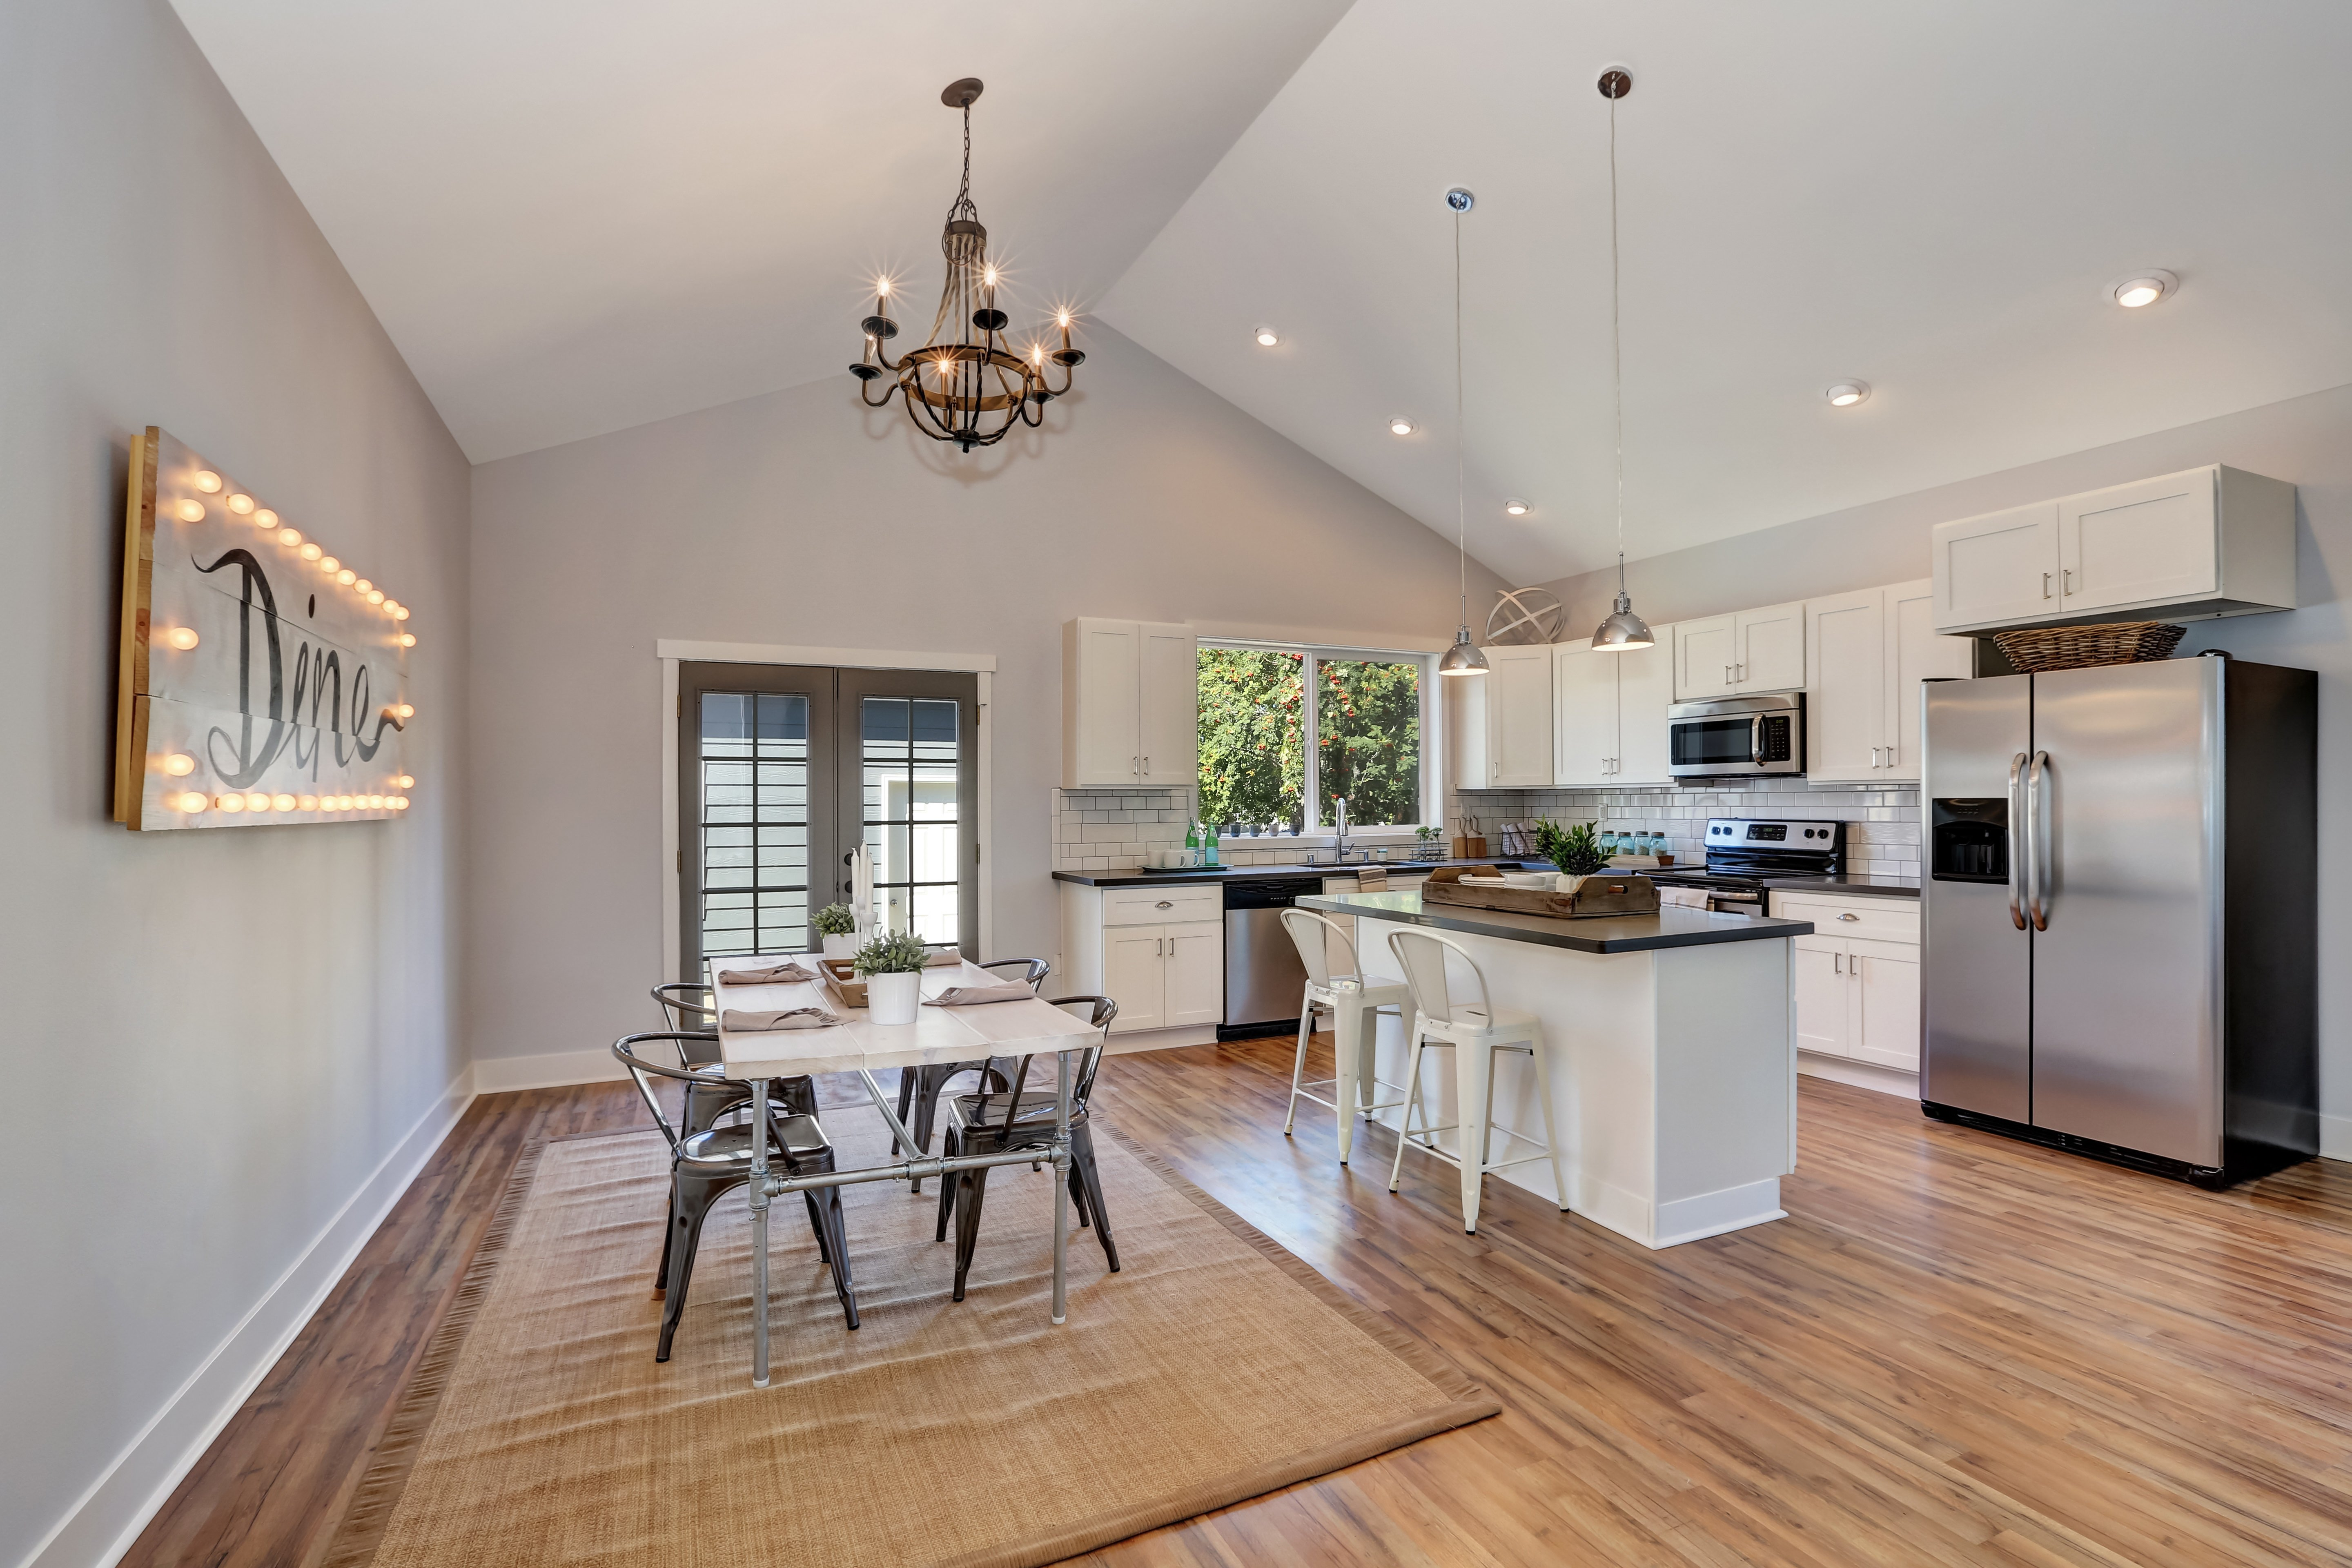 A dine-in kitchen featuring a small breakfast bar and a dining table set lighted by a gorgeous chandelier set on a white ceiling.